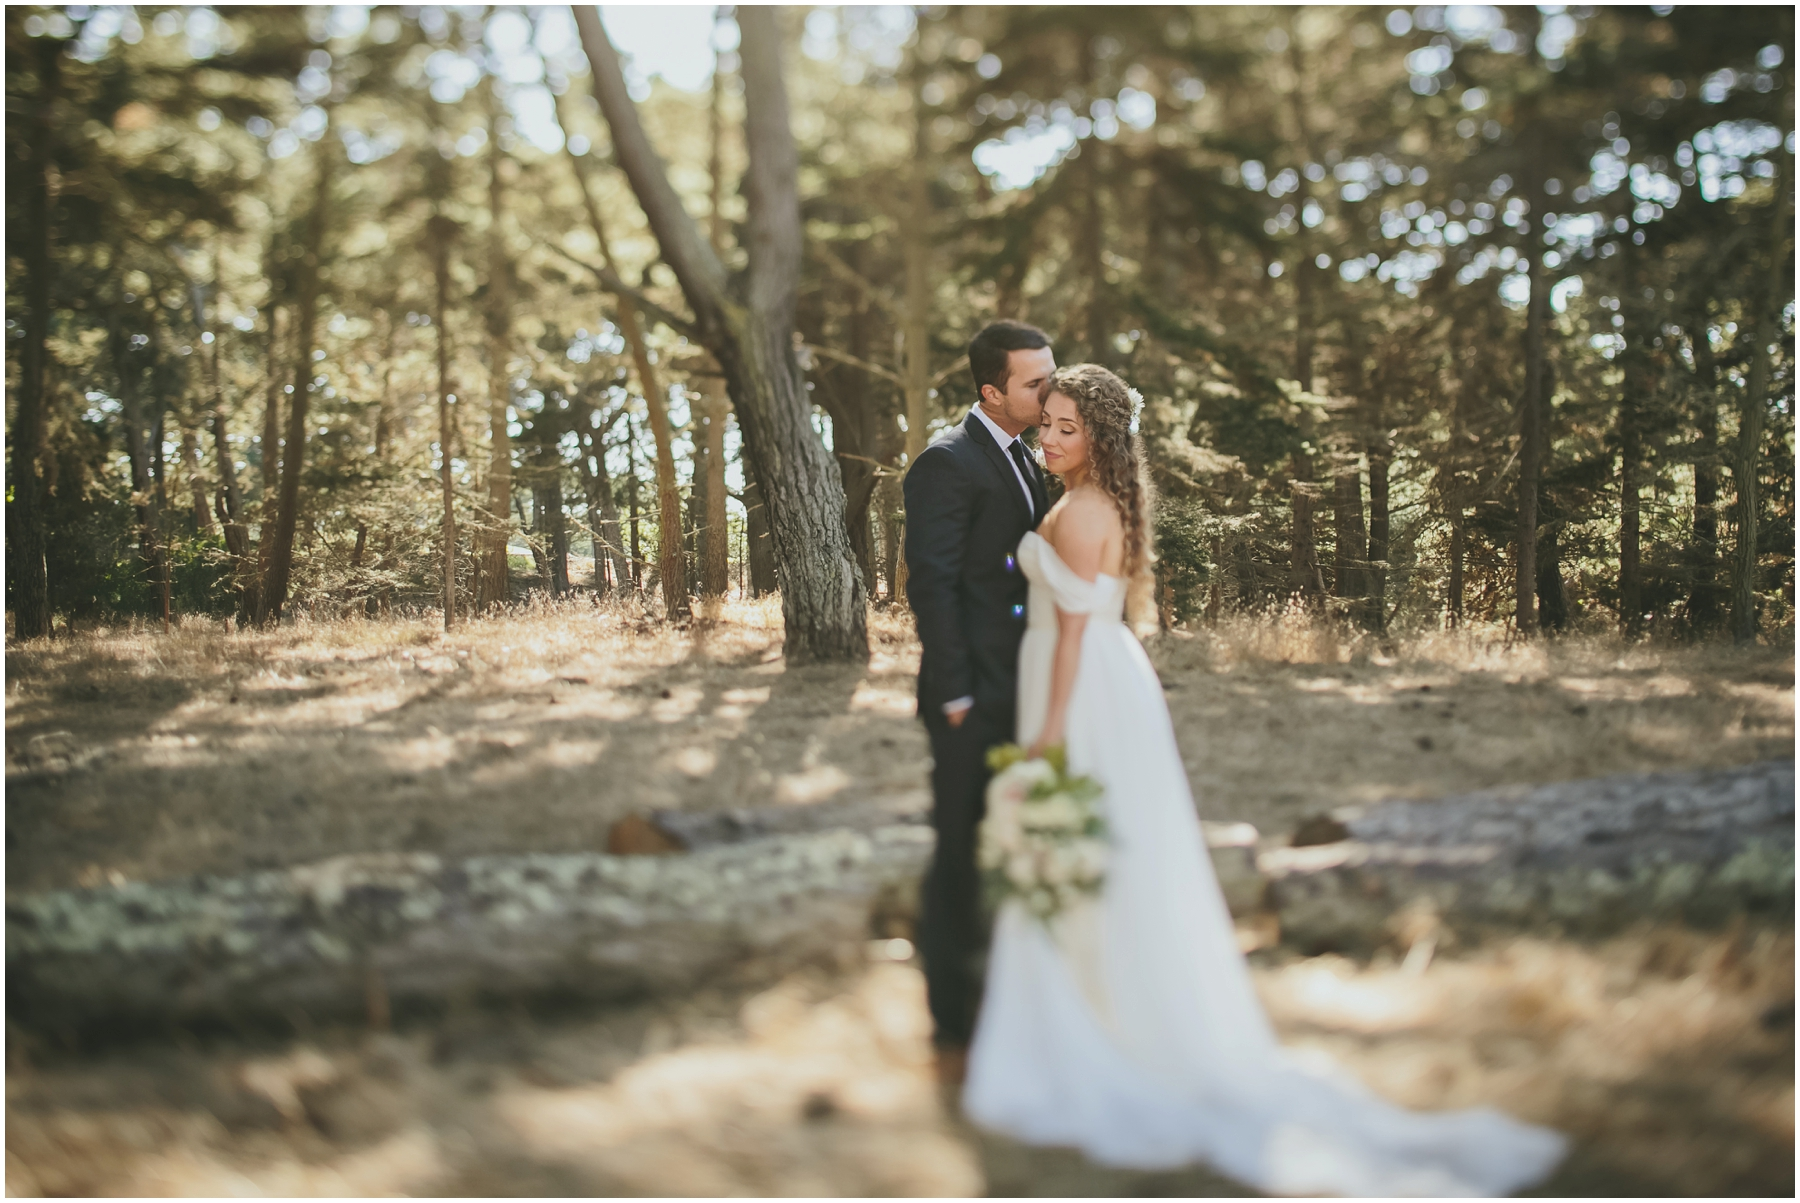 Emily+Paul-WEDDING_KellyBoitanoPhotography_0057